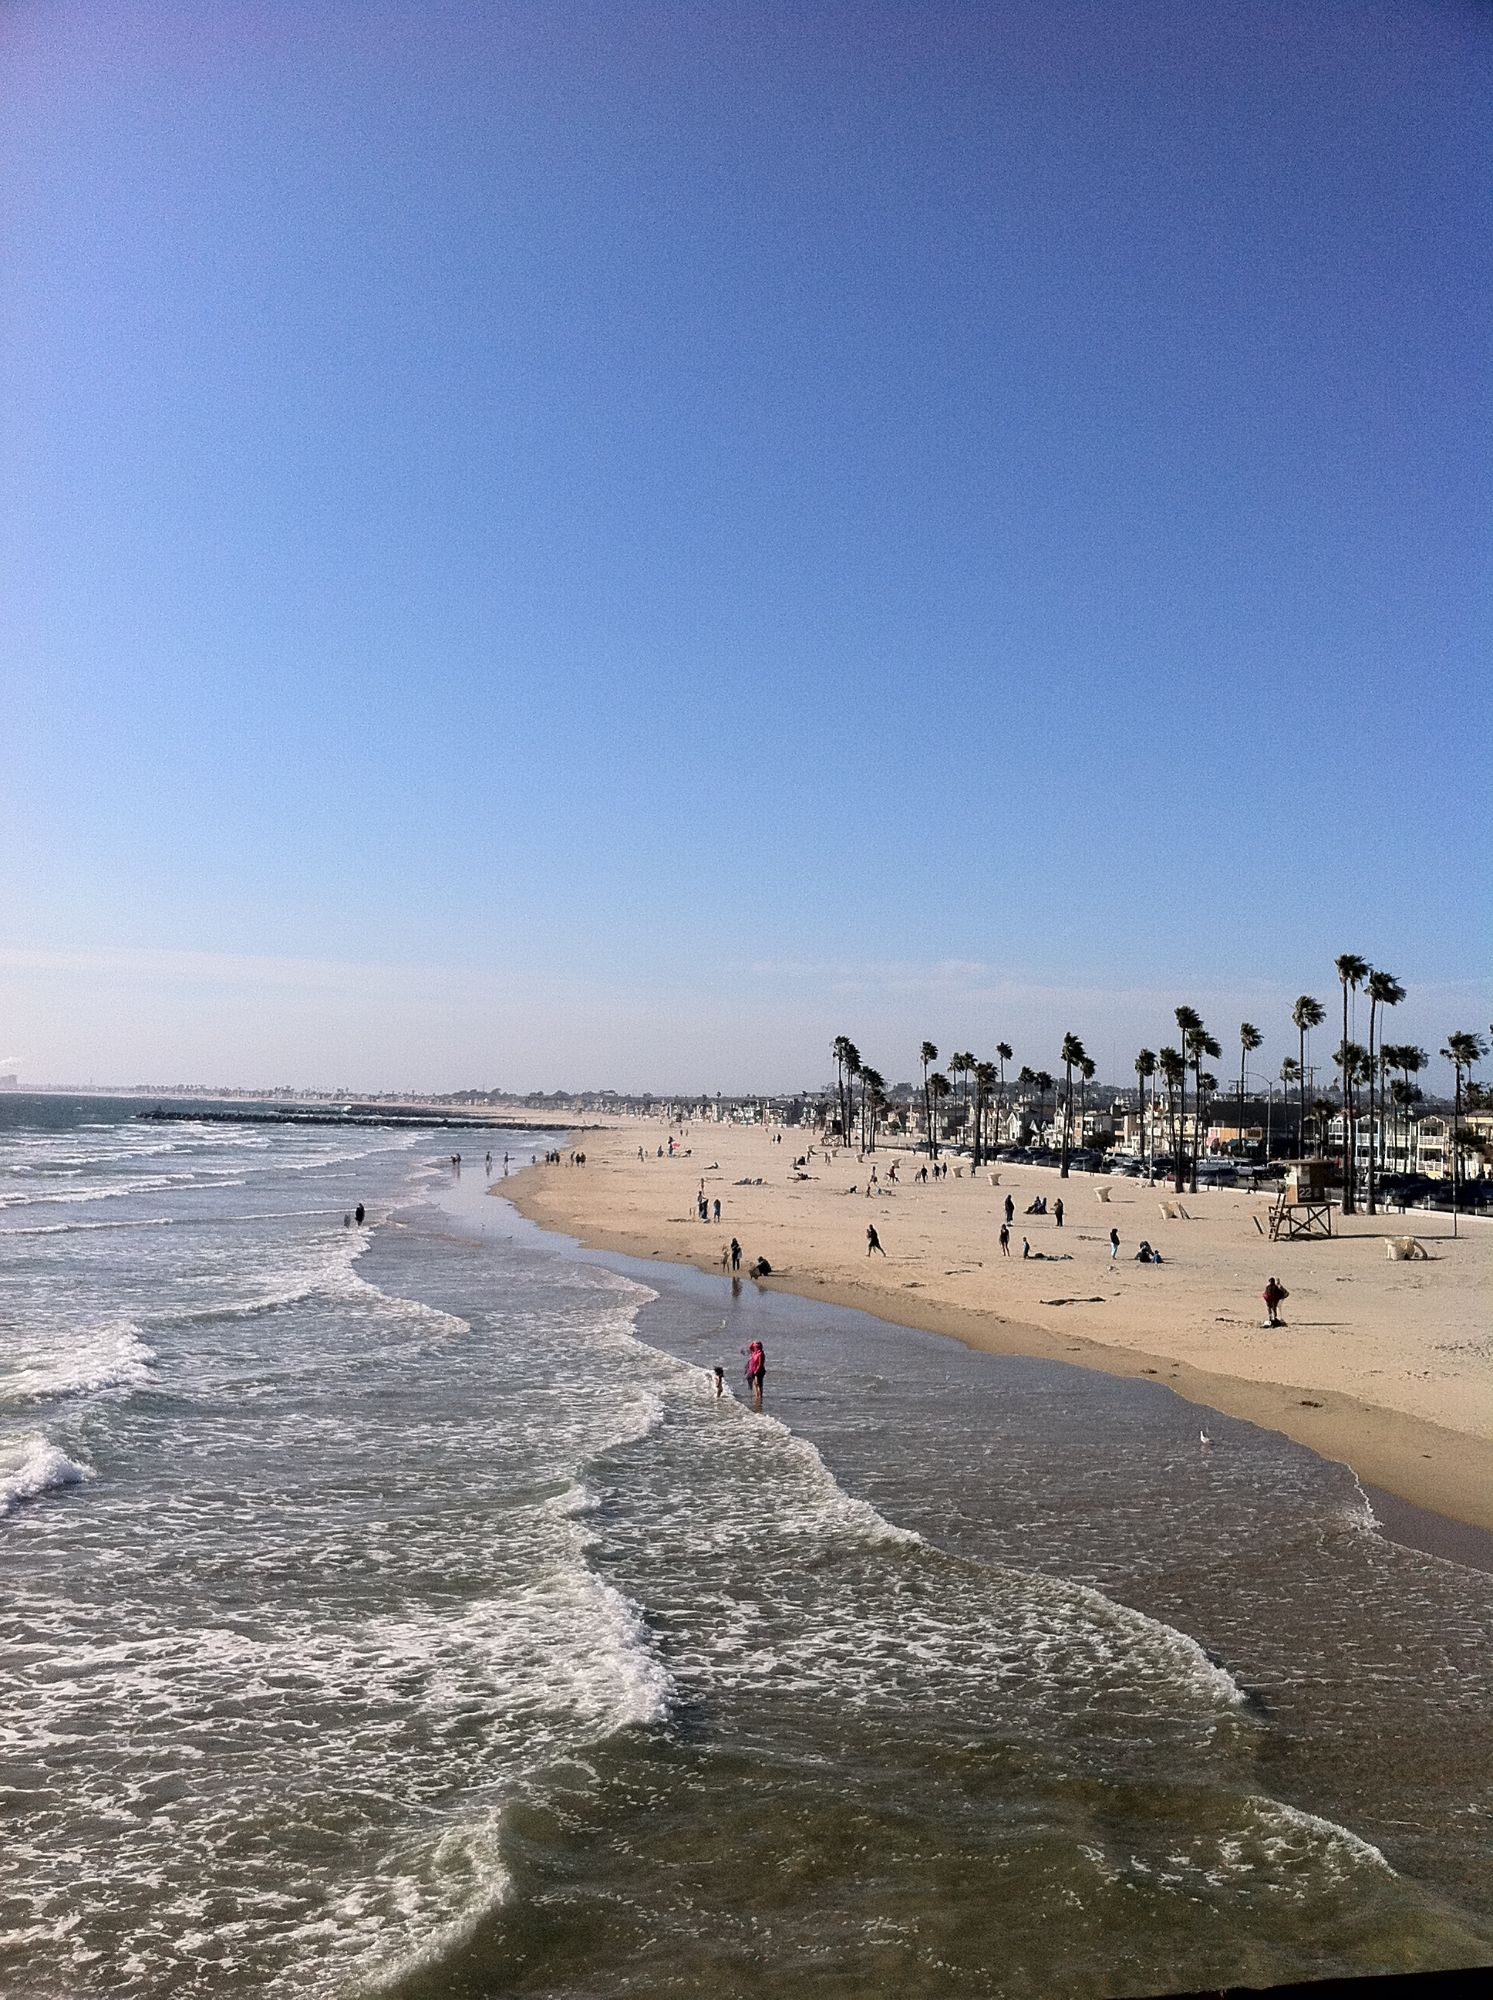 Free stock photo Orange County Los Angeles Beach USA